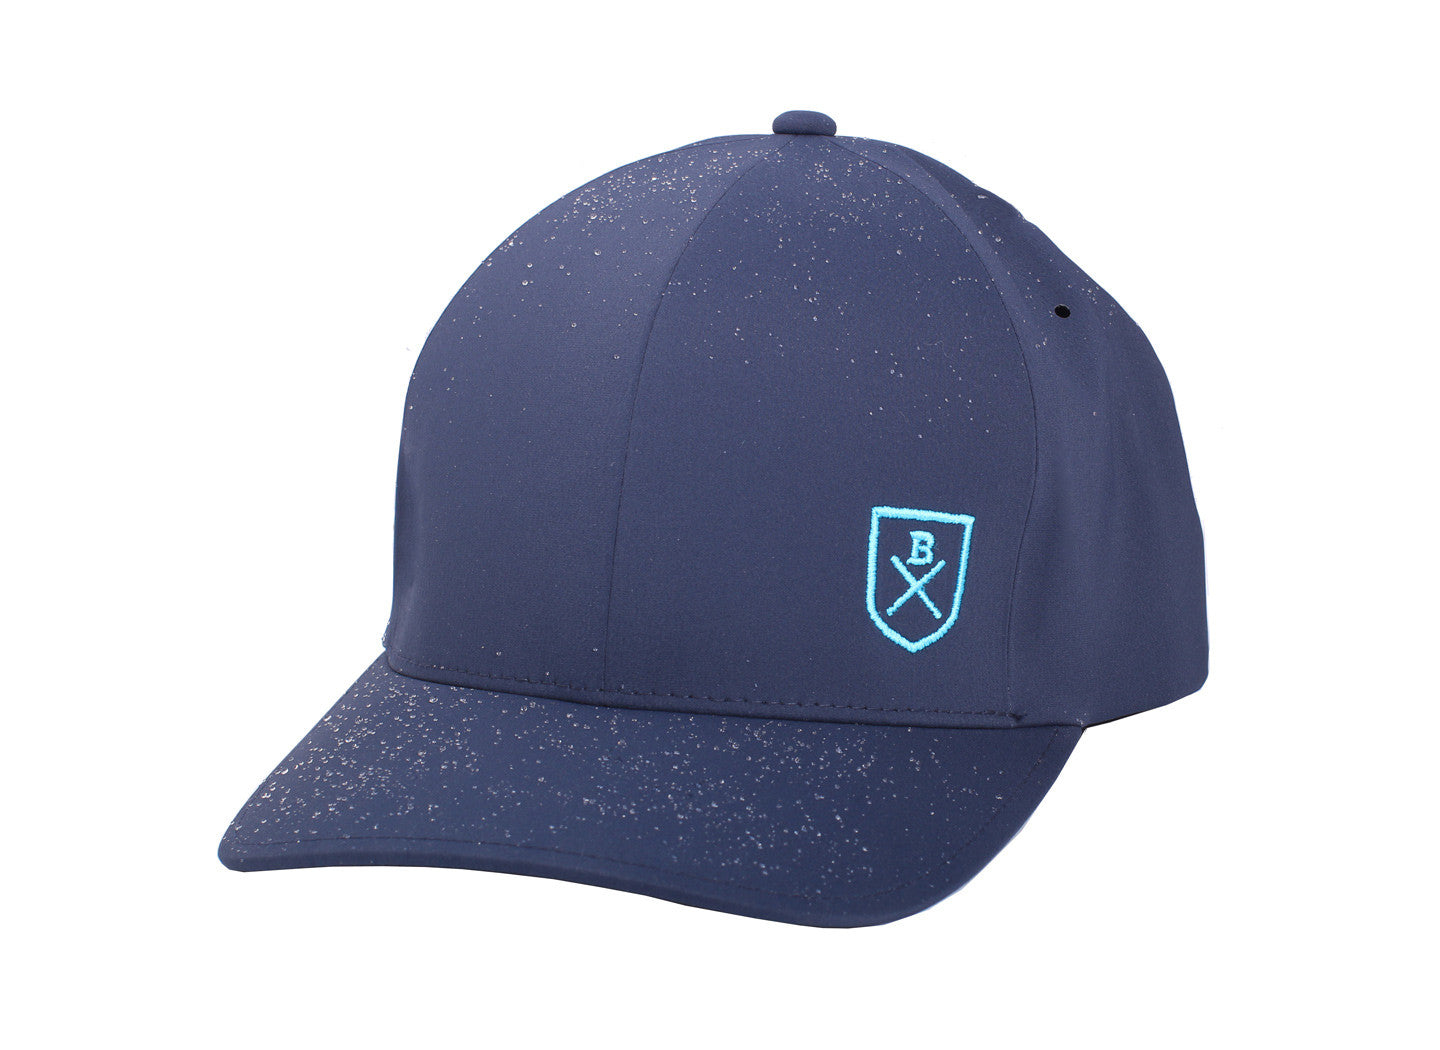 The Bluesmiths Delta Cap is Light Water Repellent